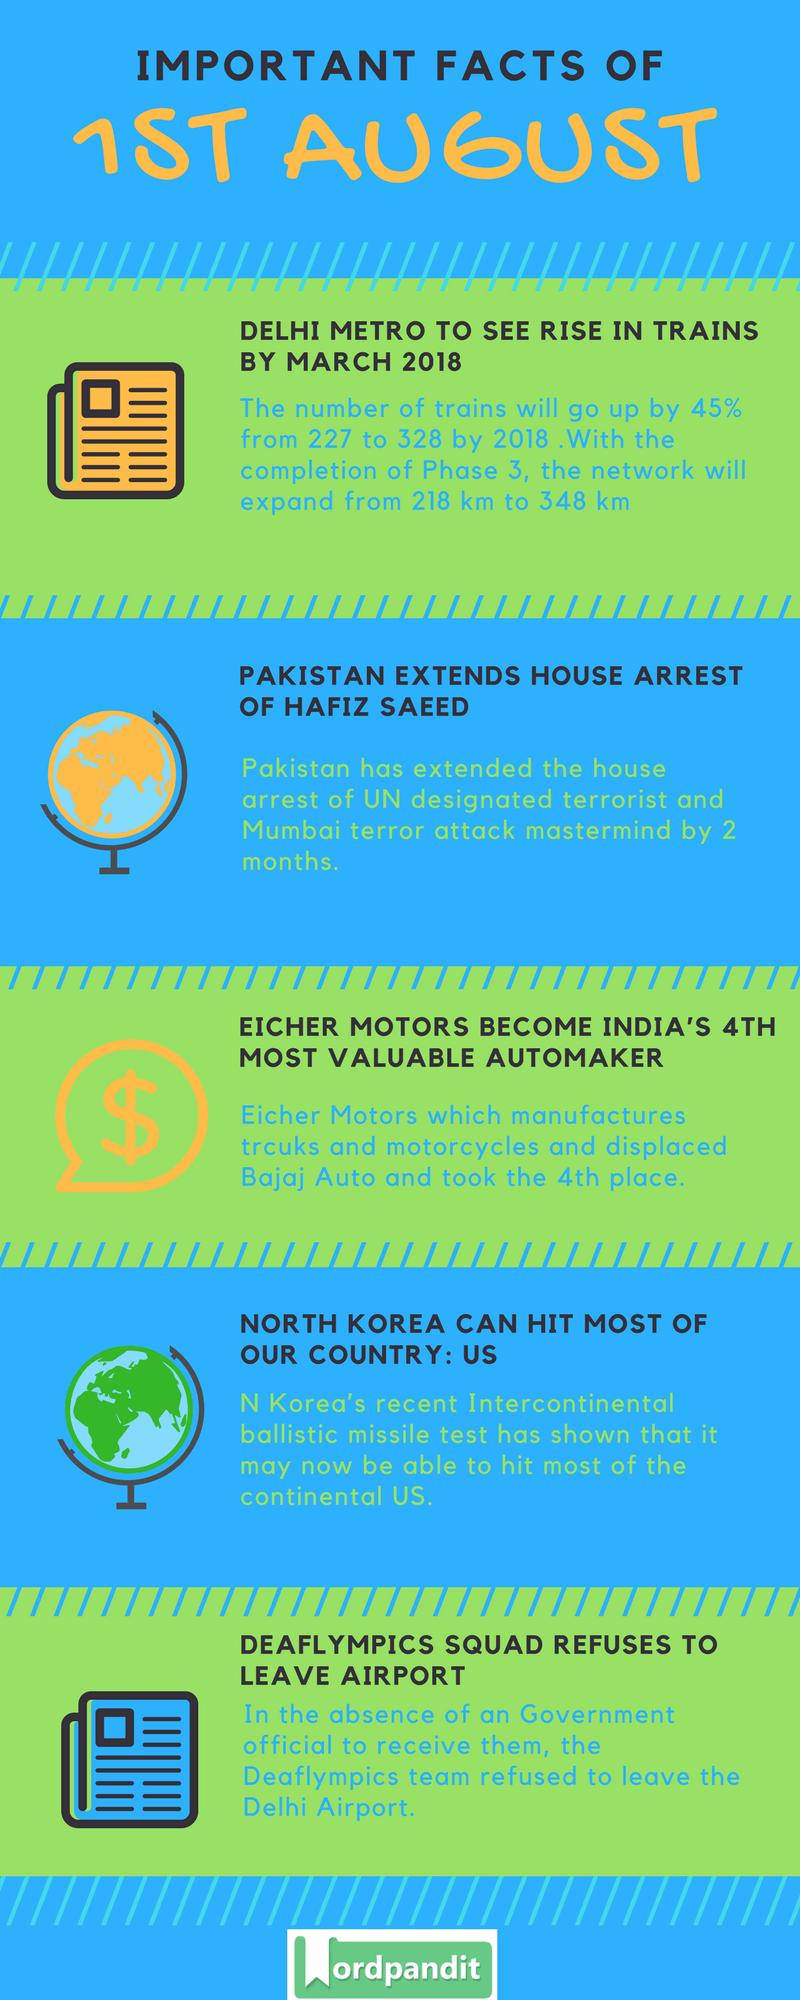 Daily-Current-Affairs-1-august-2017-Current-Affairs-Quiz-august-1-2017-Current-Affairs-Infographic